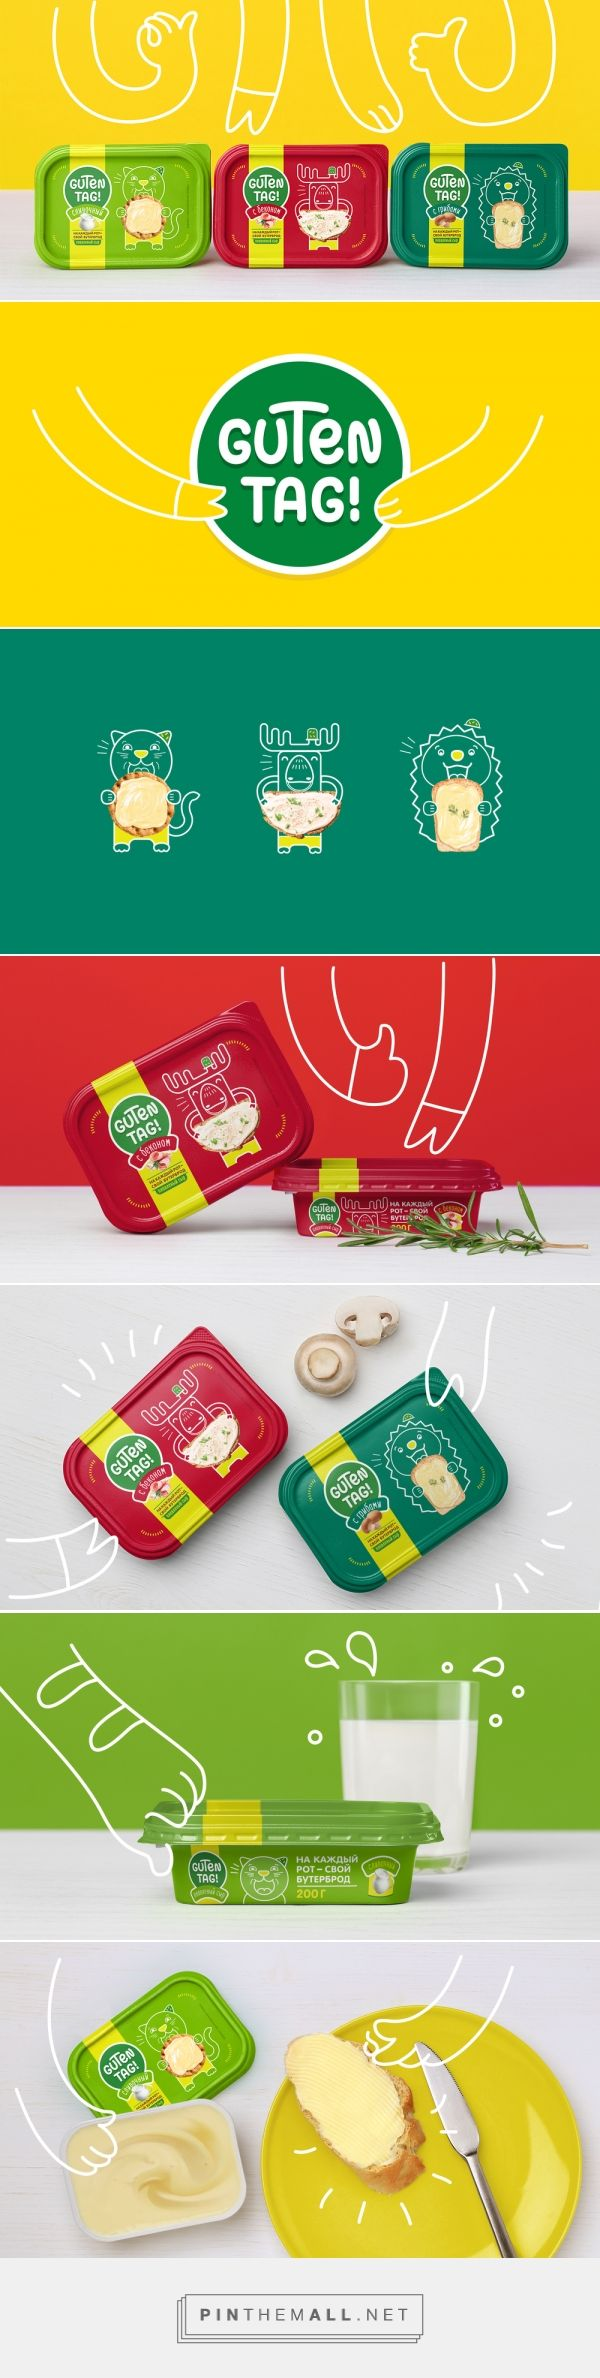 Guten Tag! by Fabula Branding via The Dieline - Branding & Packaging curated by Packaging Diva PD. Be sure and look at the images closely. Cheese snacks for the packaging smile file : )